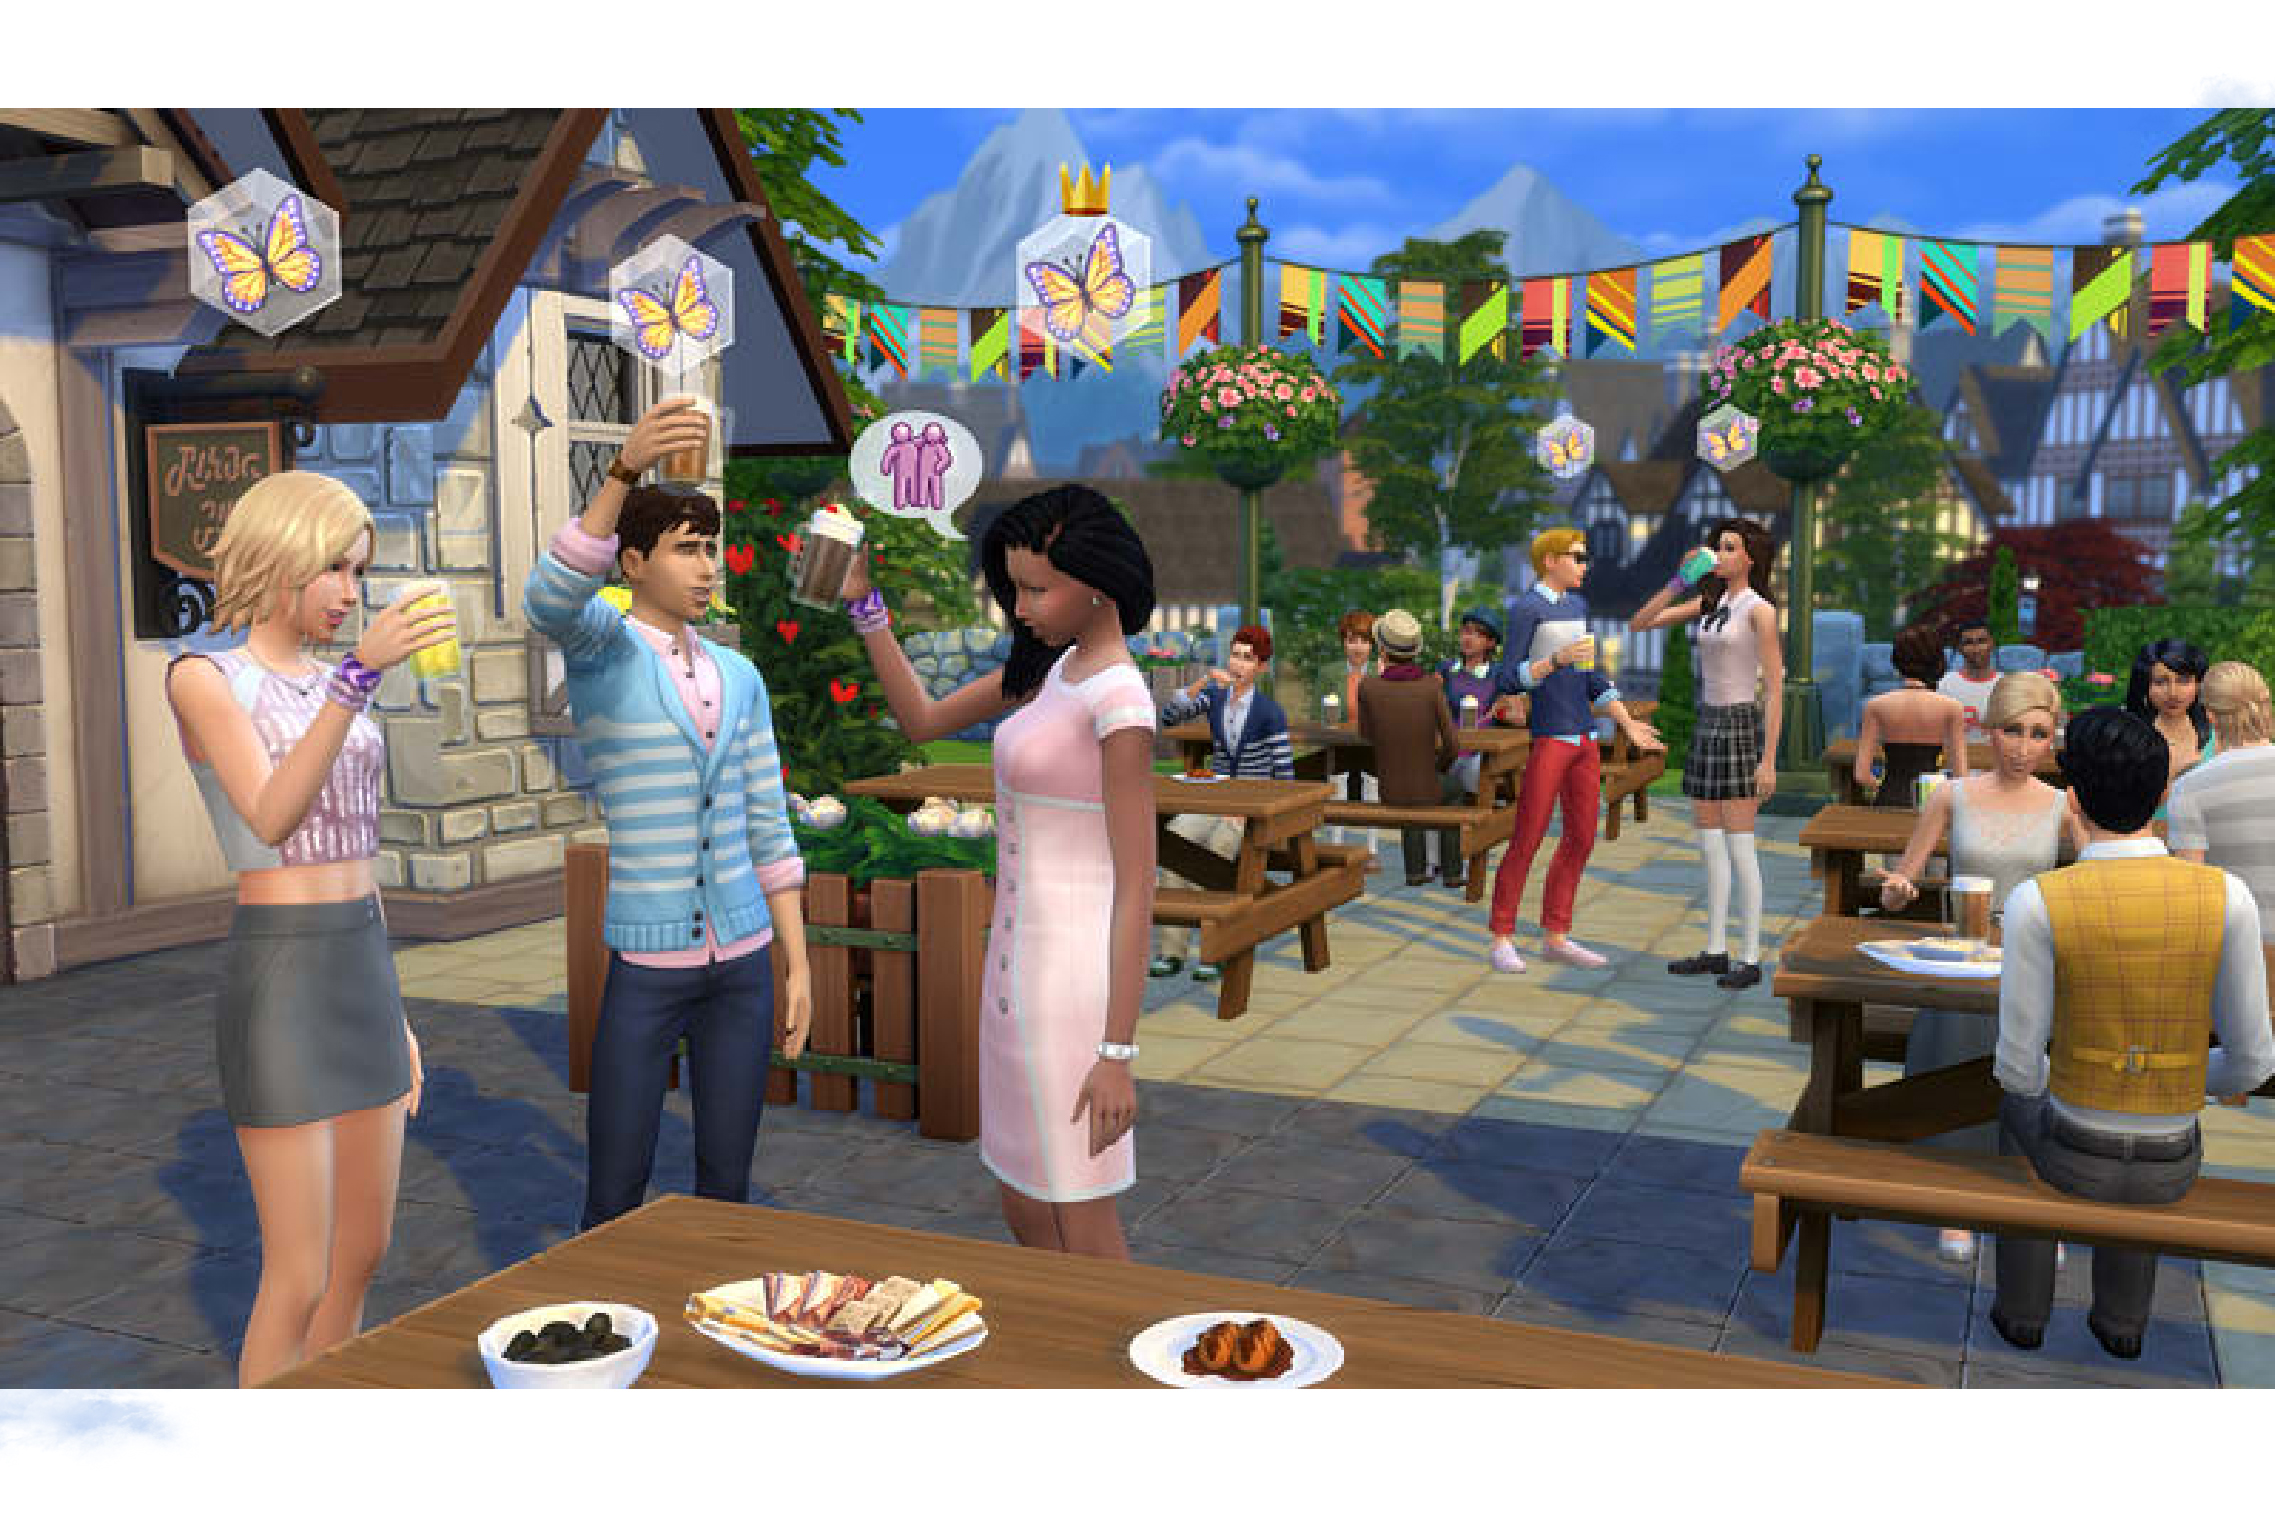 The Sims 4: Ranking the Packs 4